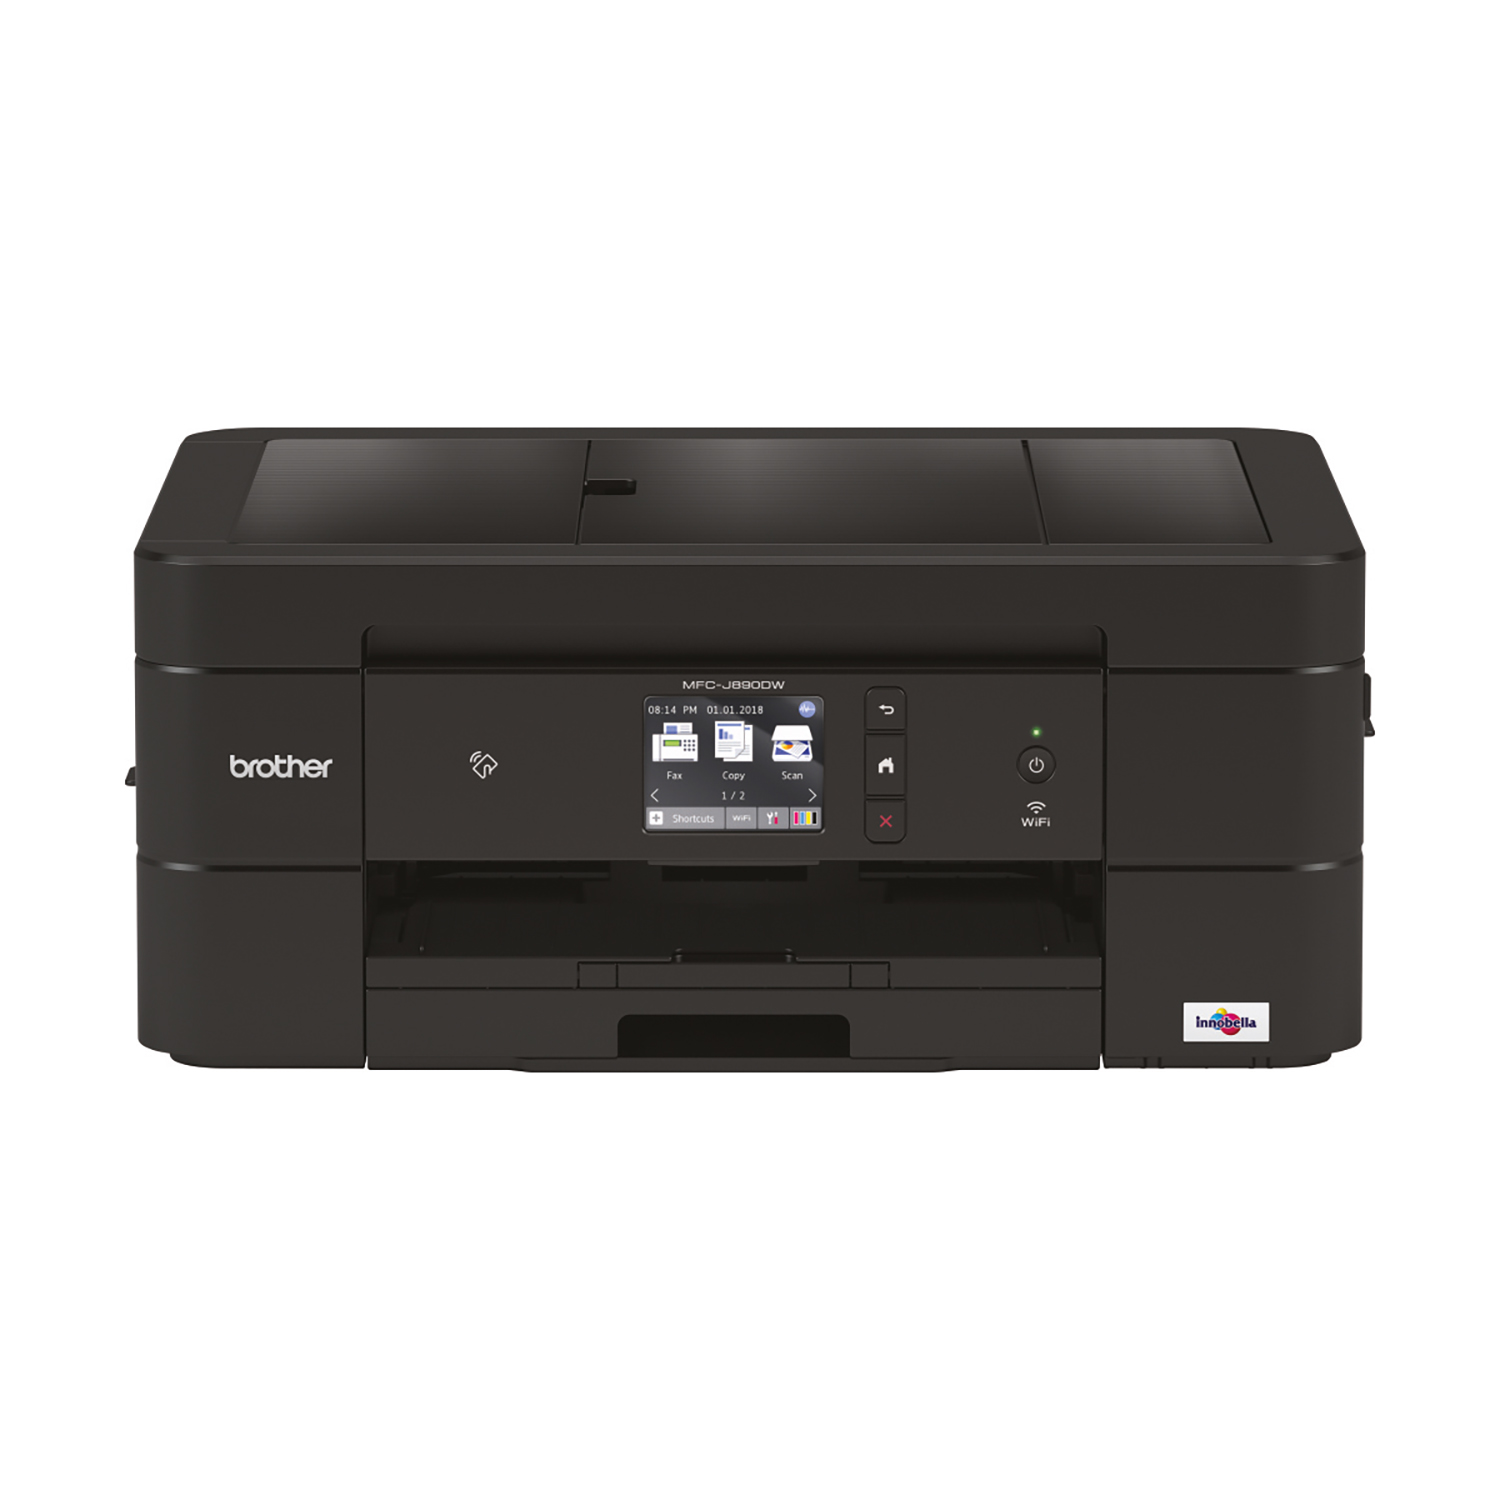 Multifunctional Machines Brother MFCJ890DW Multifunction Inkjet Printer Ref MFCJ890DWZU1